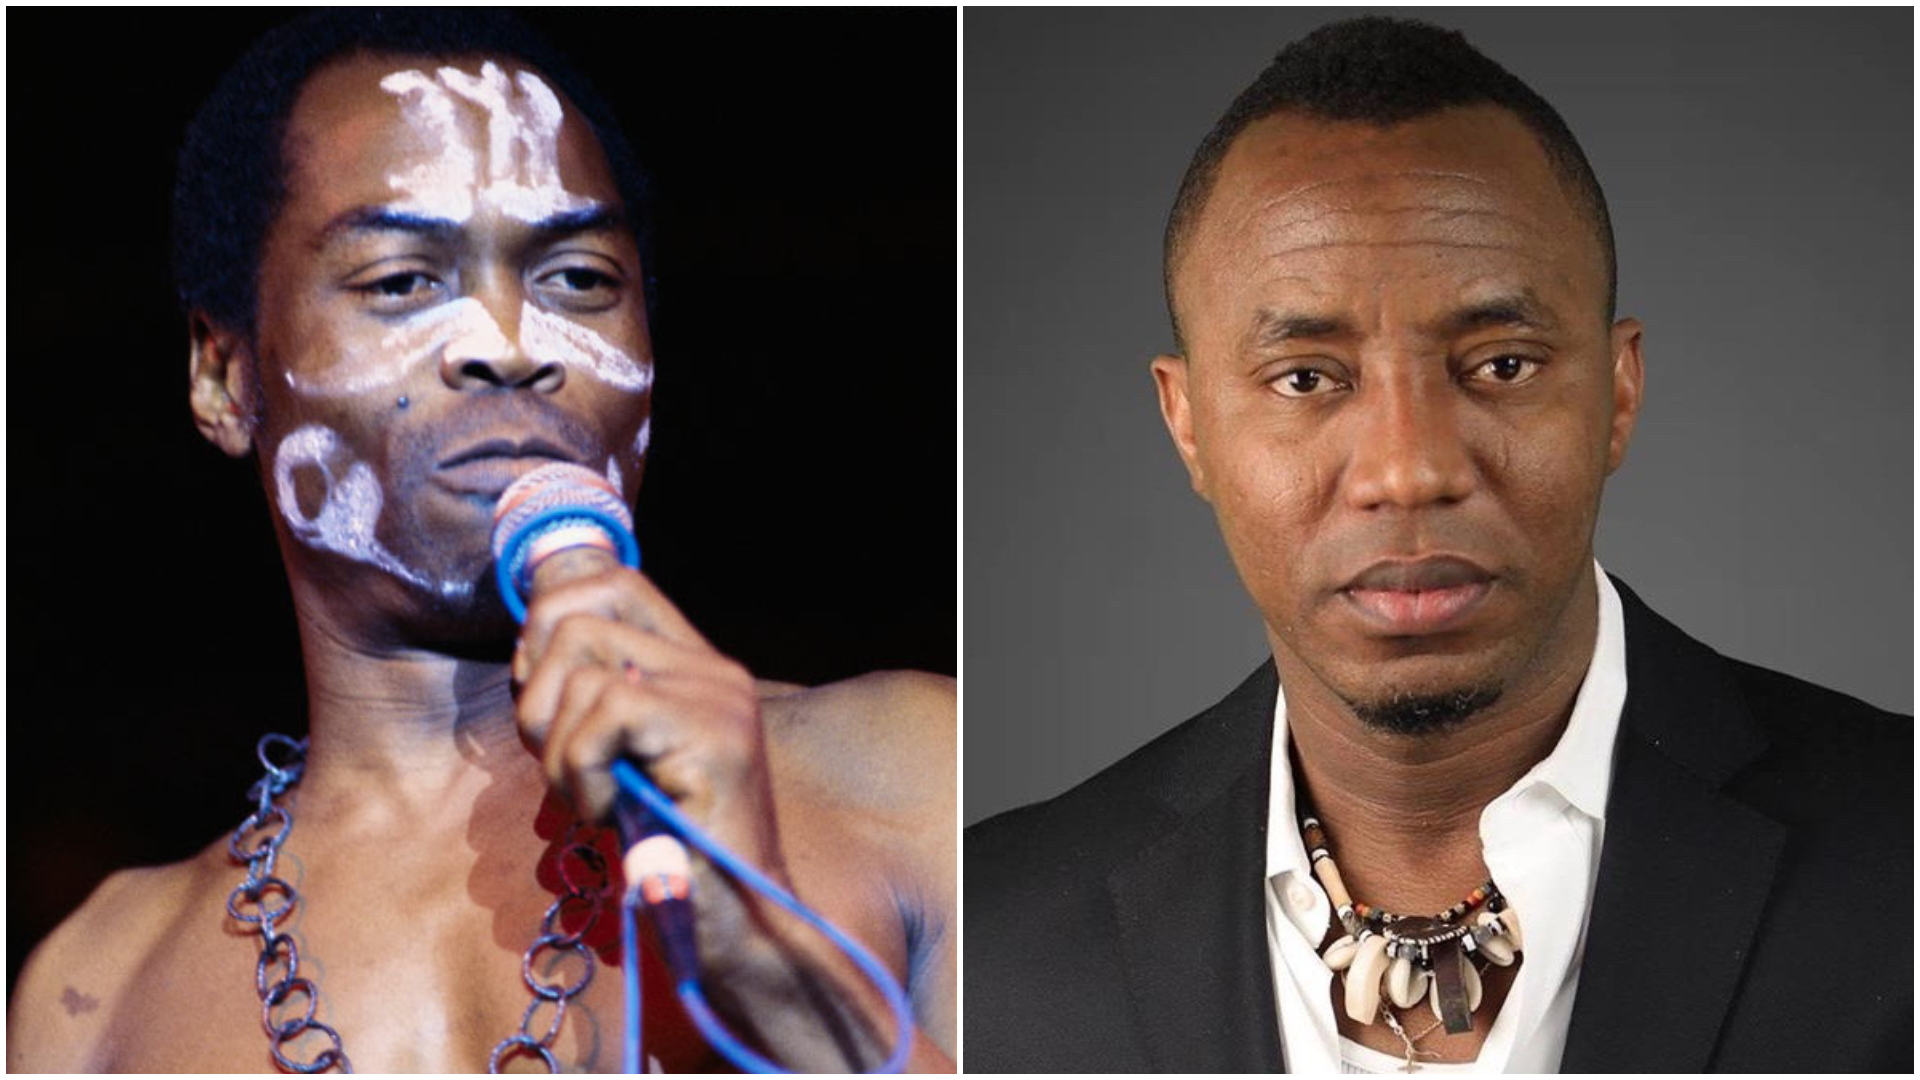 NDLEA injected Fela with poison – Dede Mabiaku reveals, says he fears for Sowore